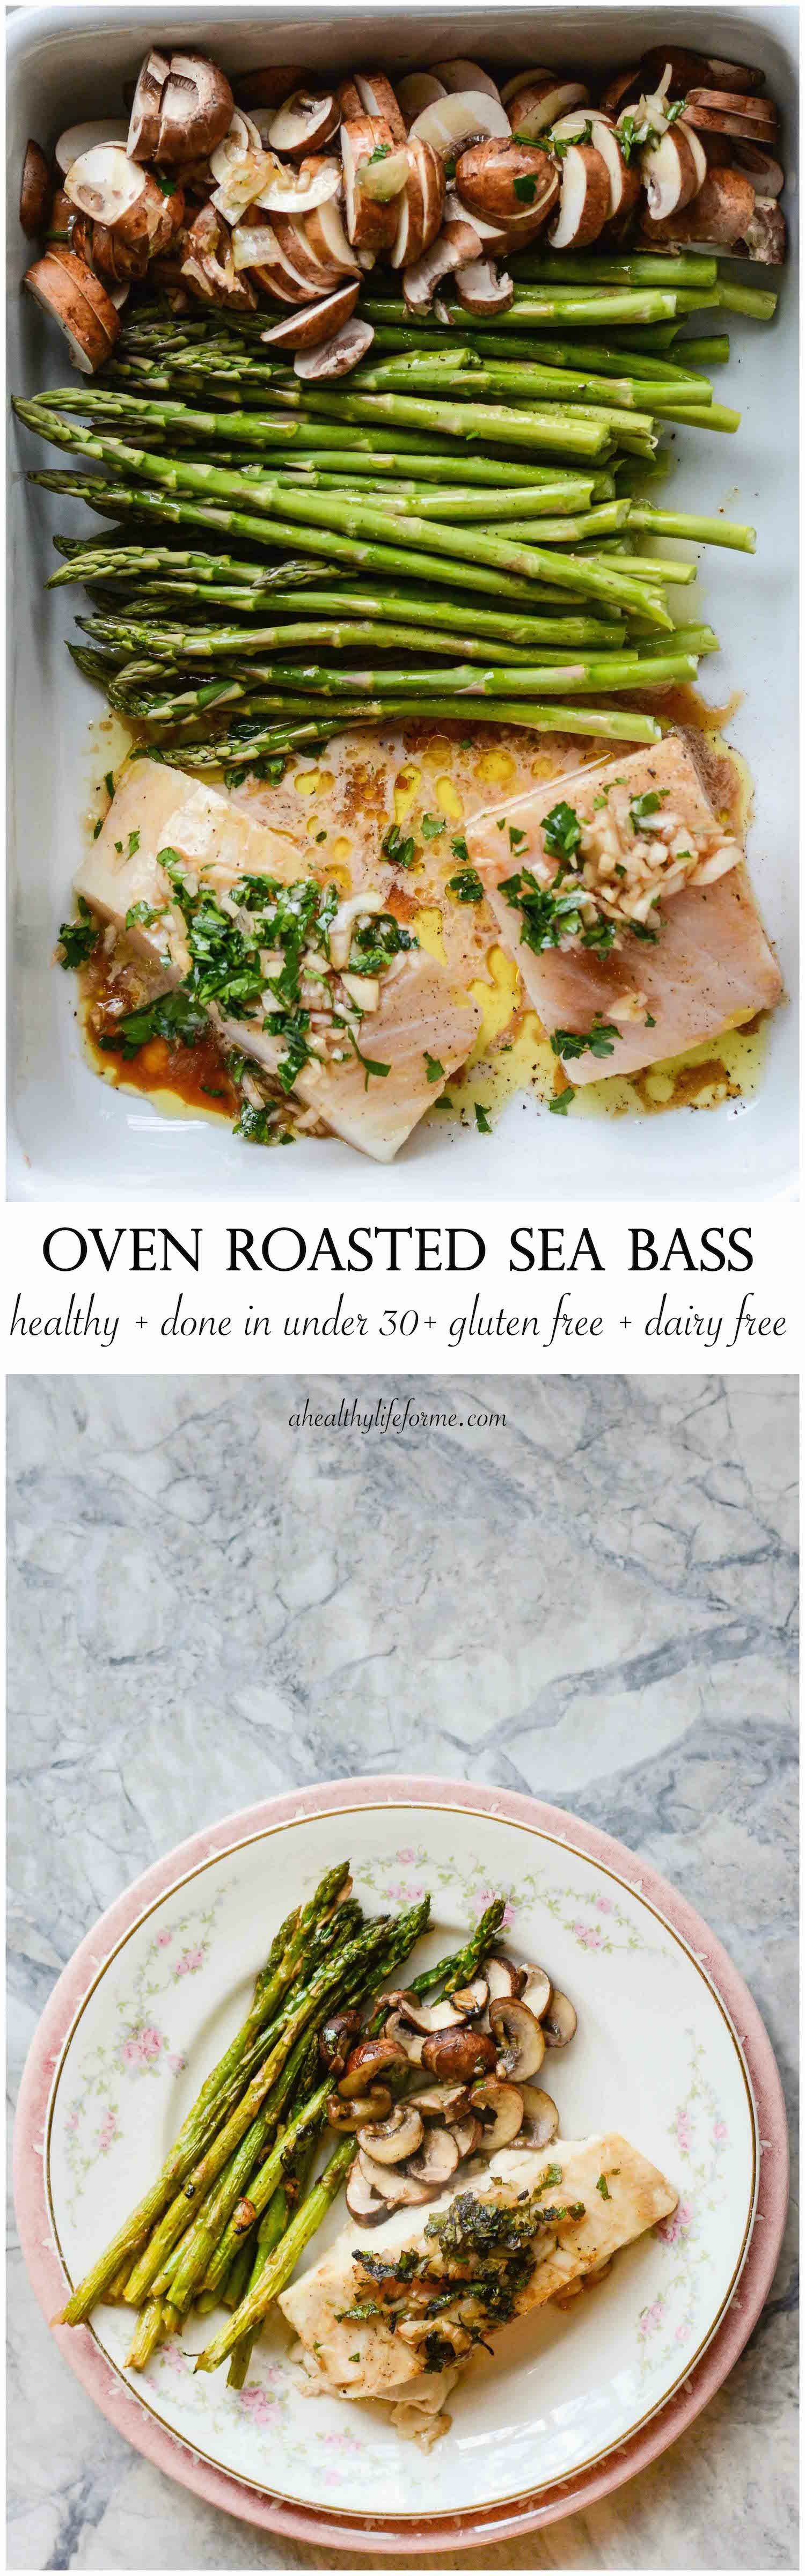 Oven roasted sea bass recipe dairy healthy dinners for Healthy fish dinner